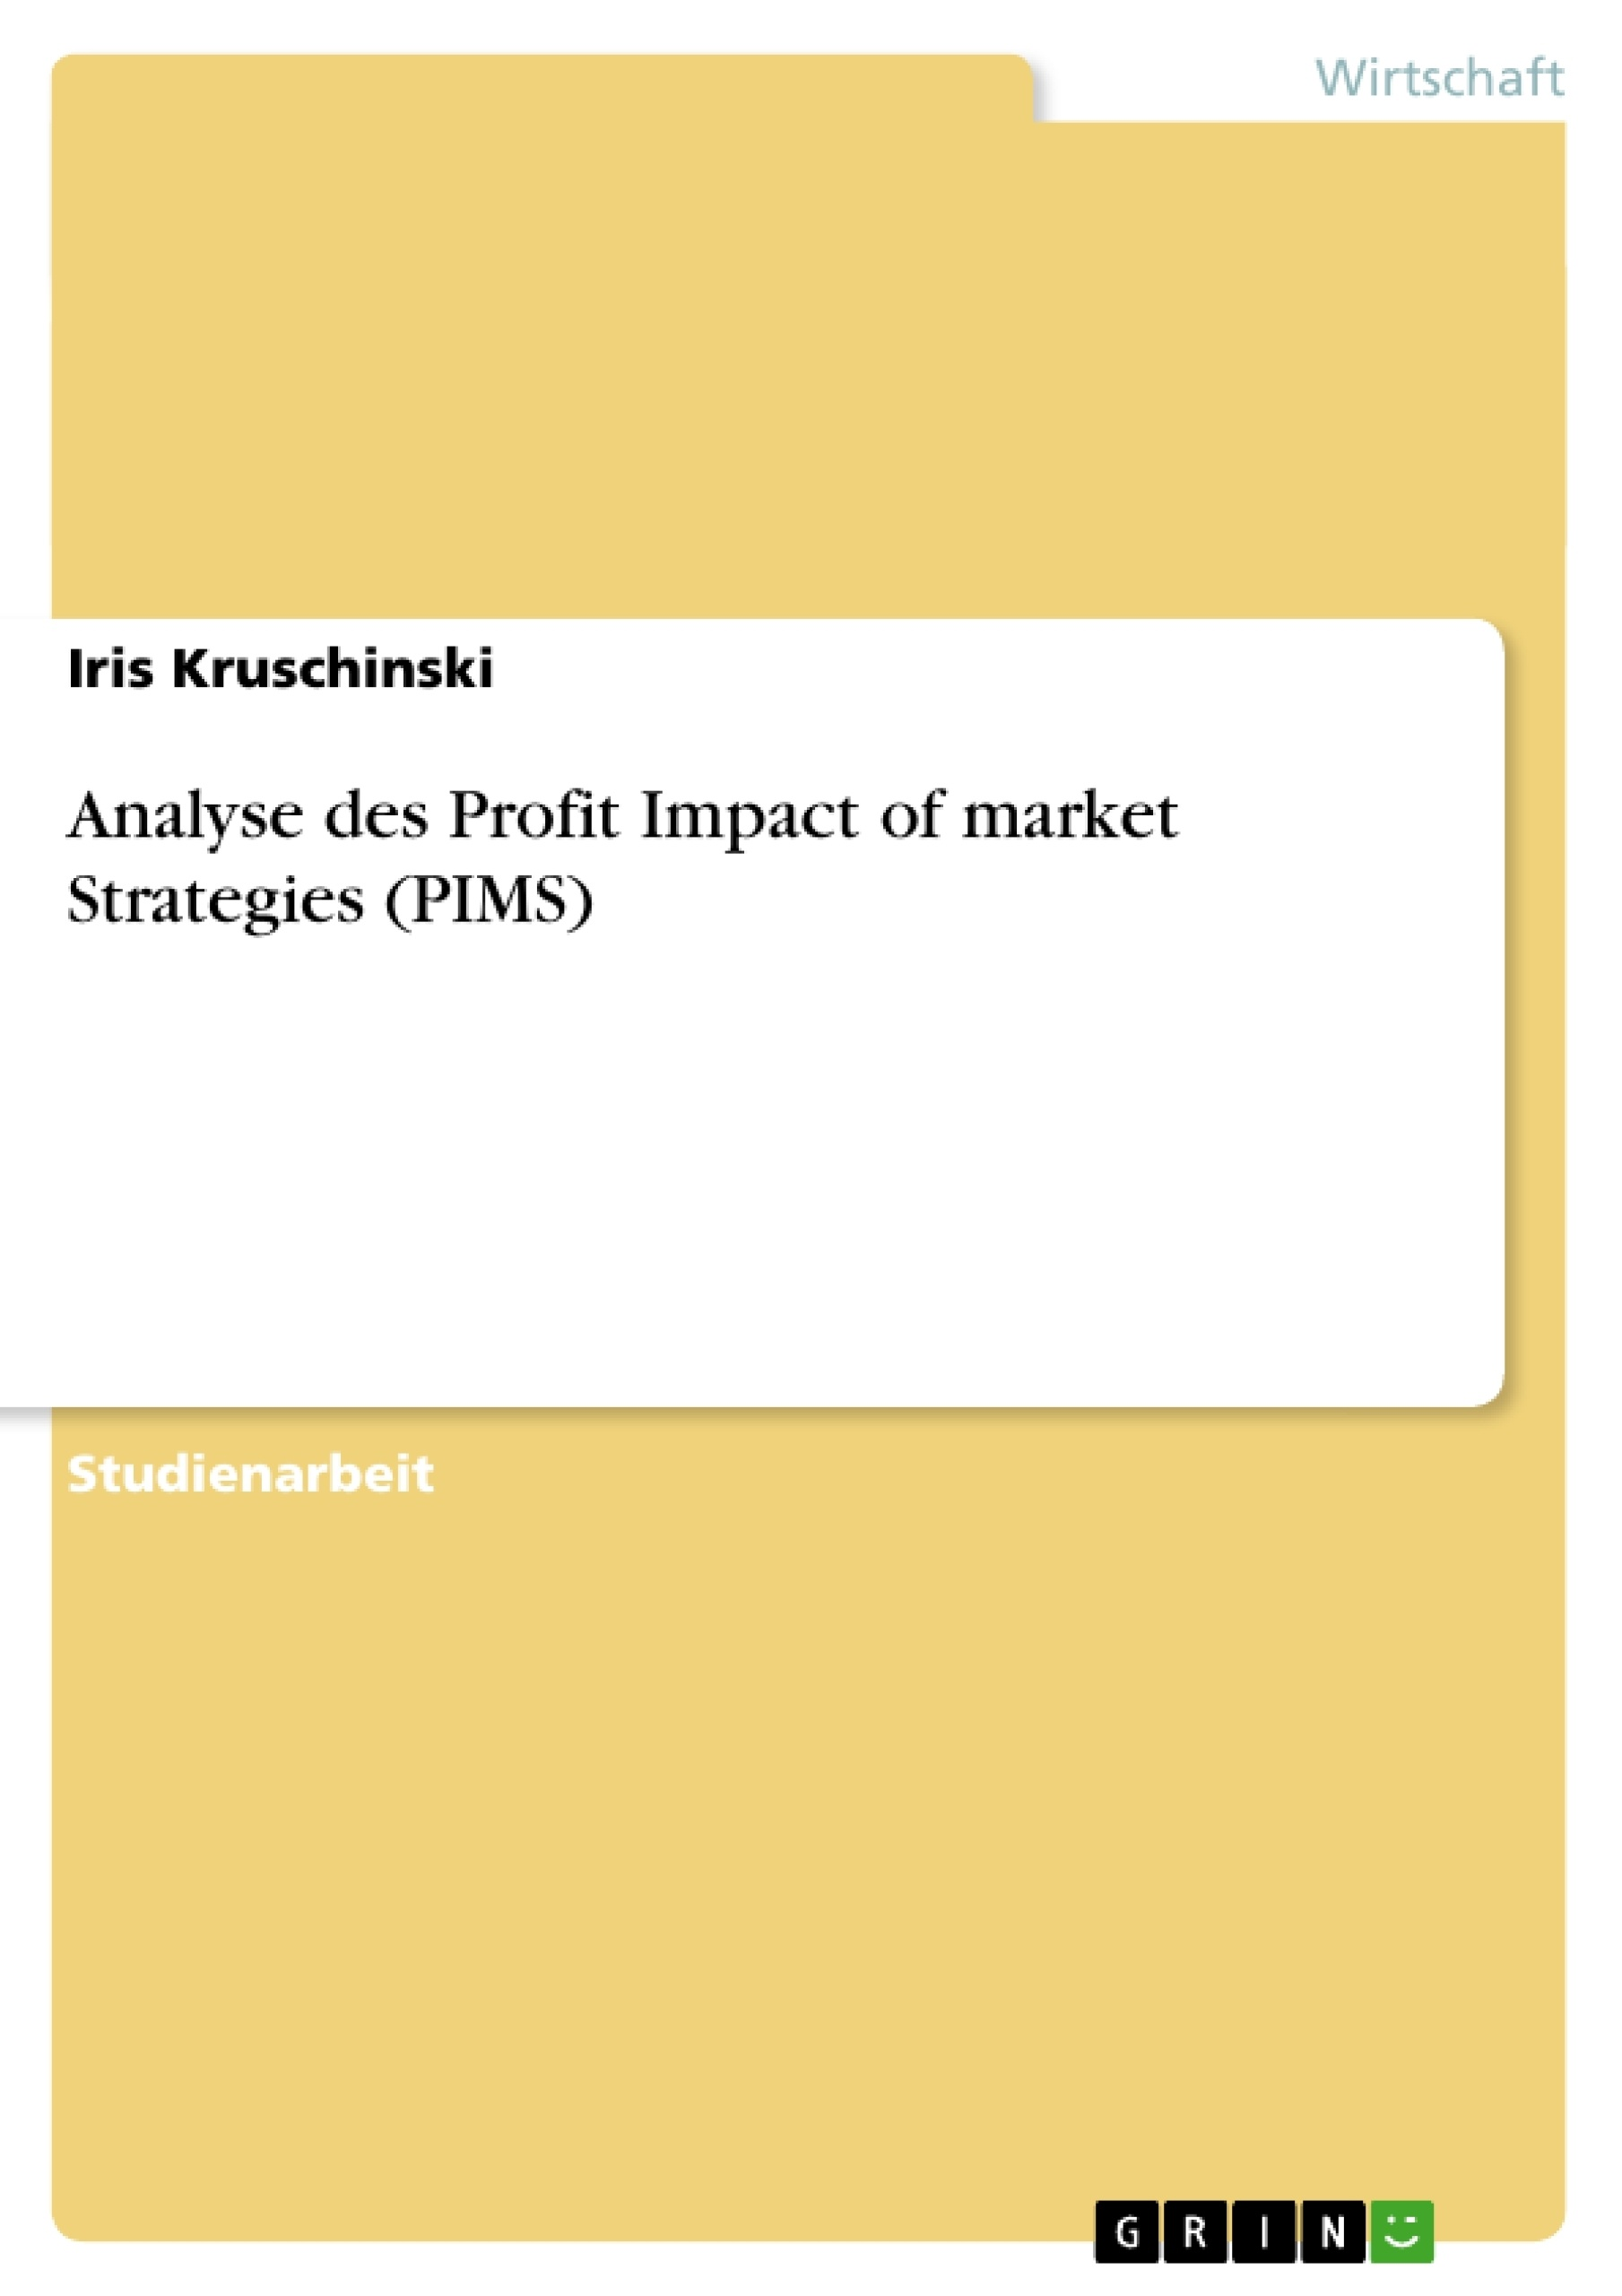 Titel: Analyse des Profit Impact of market Strategies (PIMS)